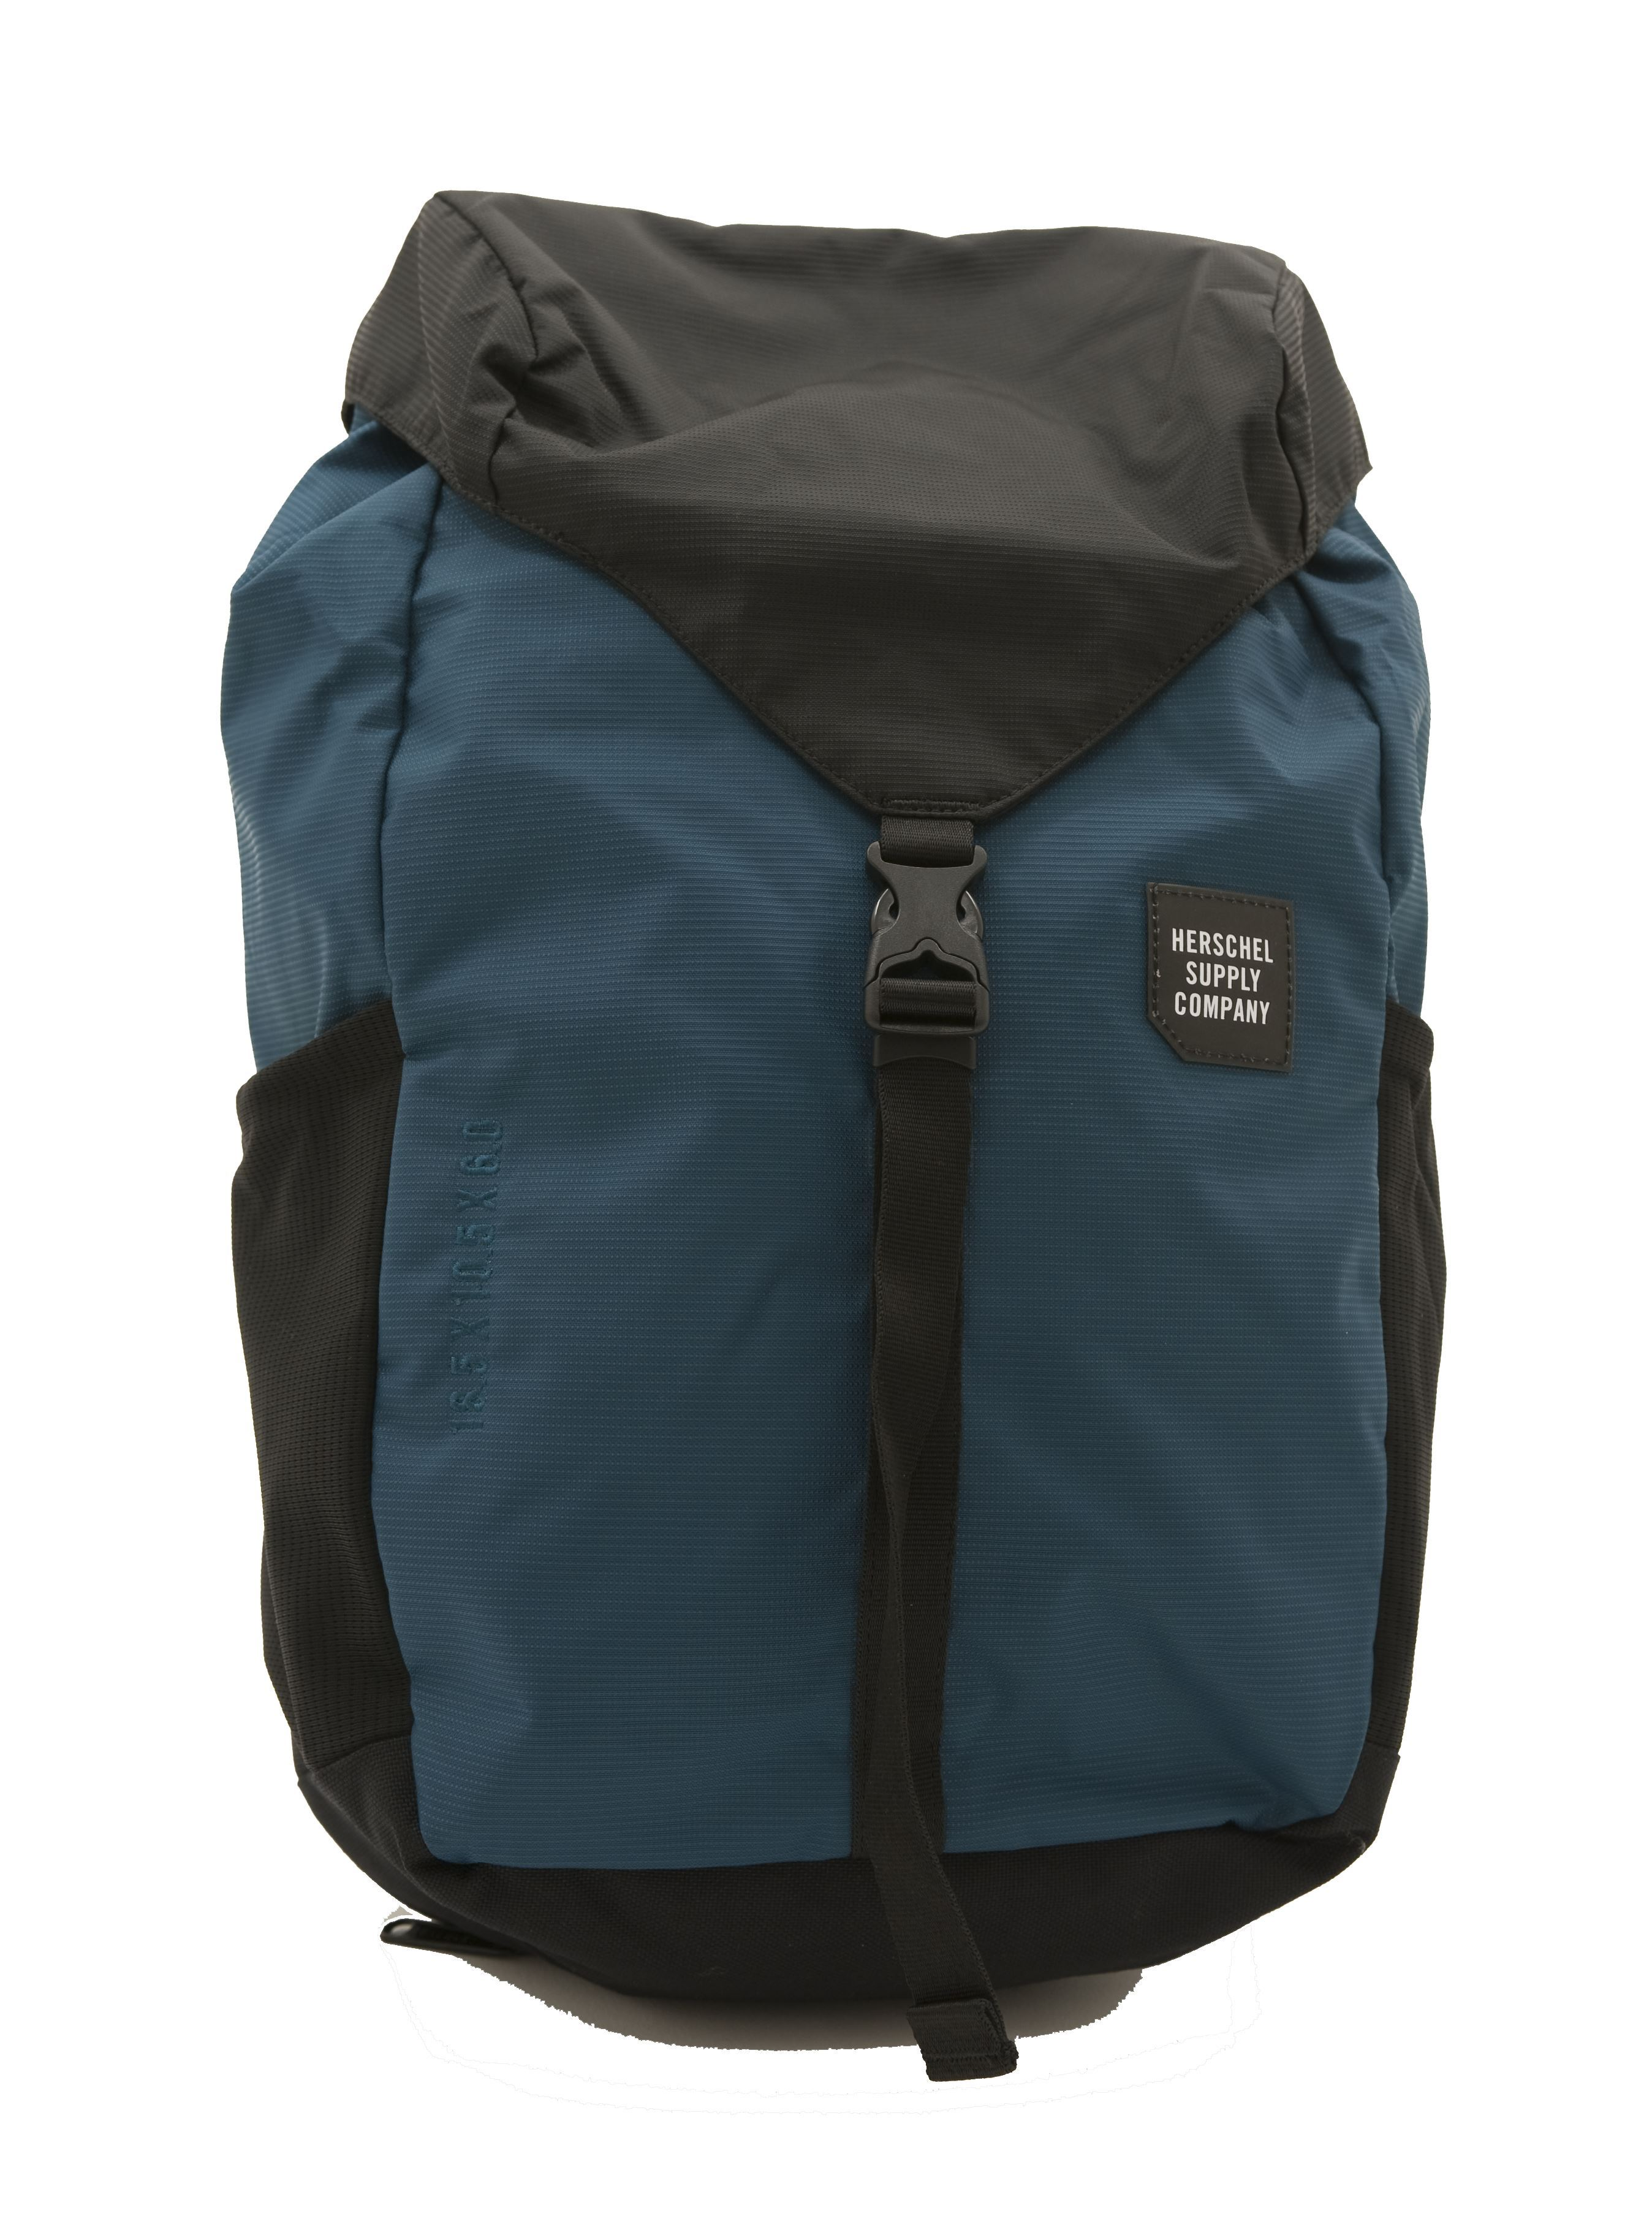 99a03478e85d5 Where To Buy Herschel Backpacks Nyc- Fenix Toulouse Handball